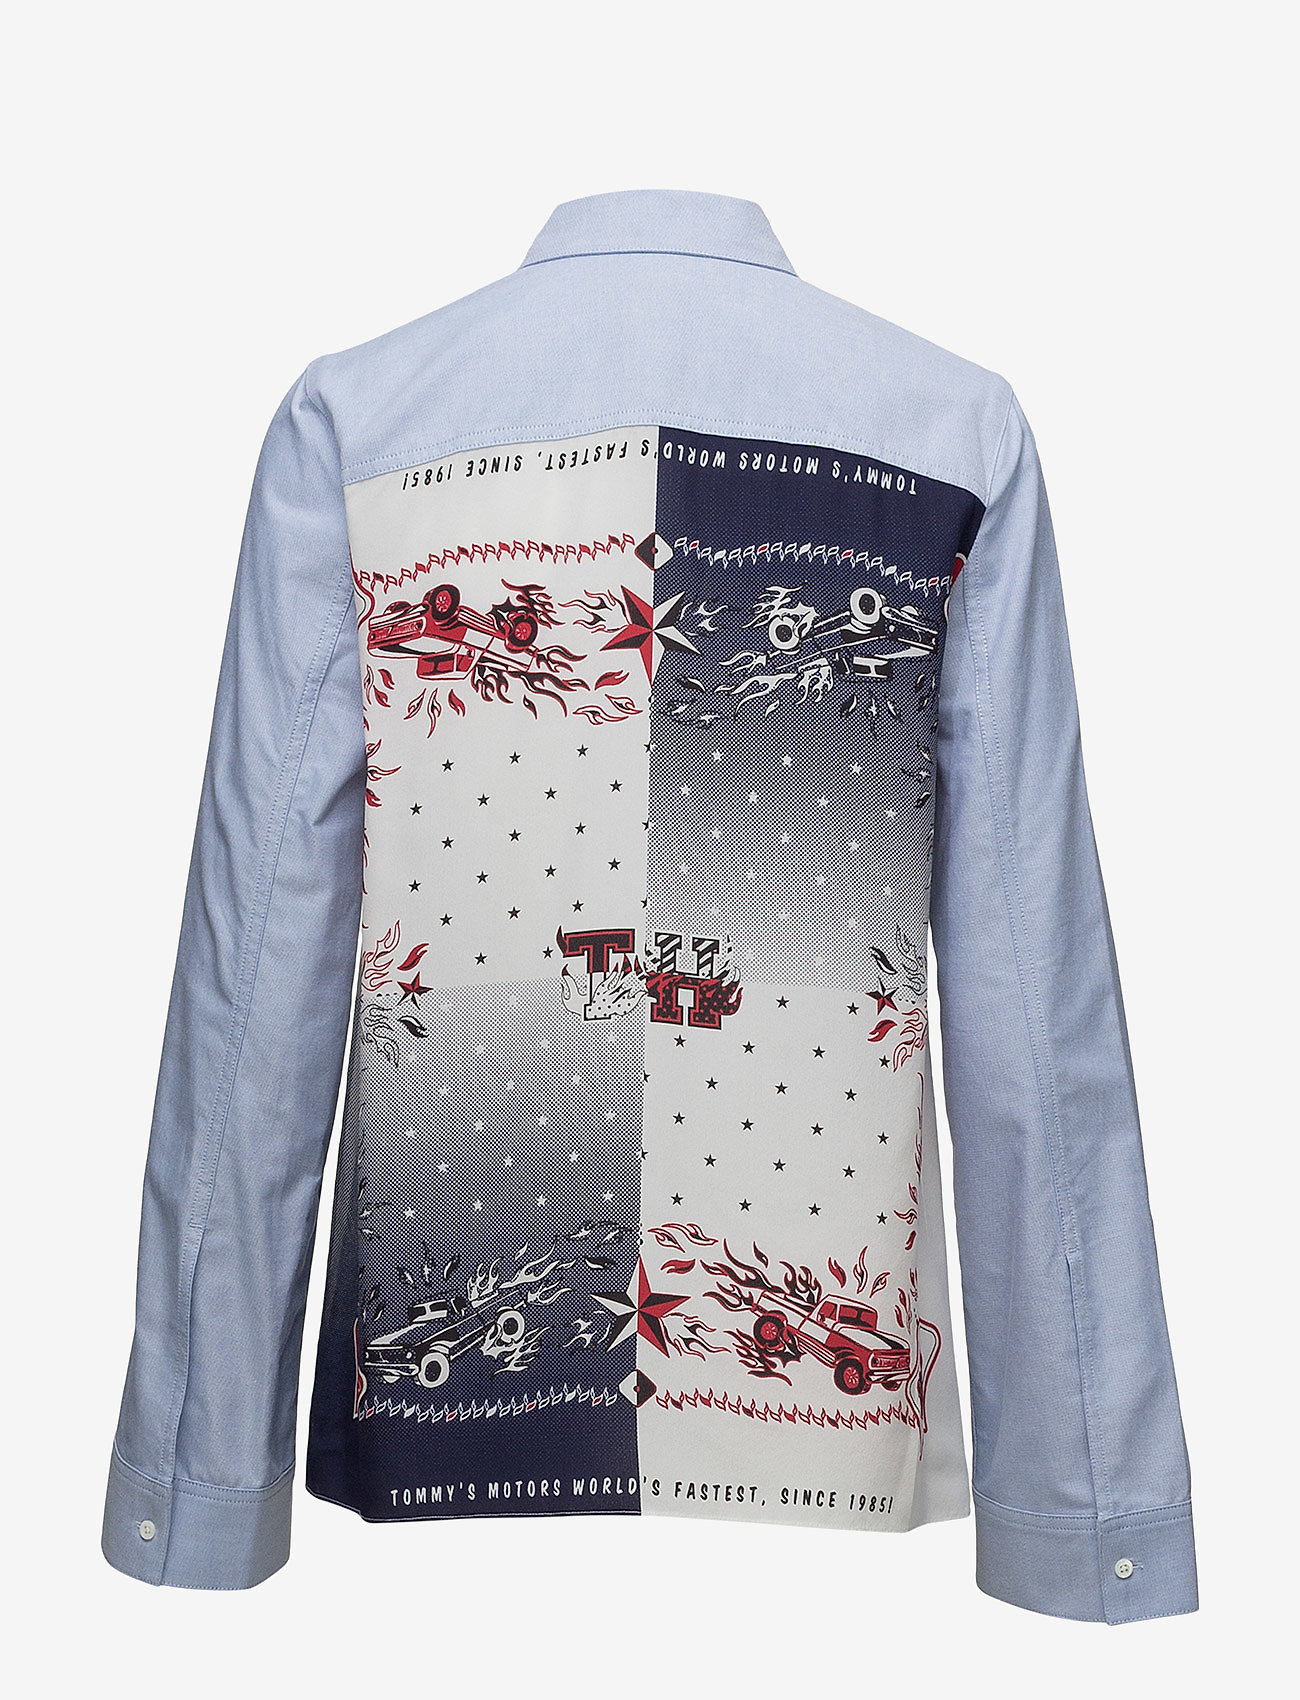 Hilfiger Collection - BANDANA SHIRT LS - chemises à manches longues - oxford / multi